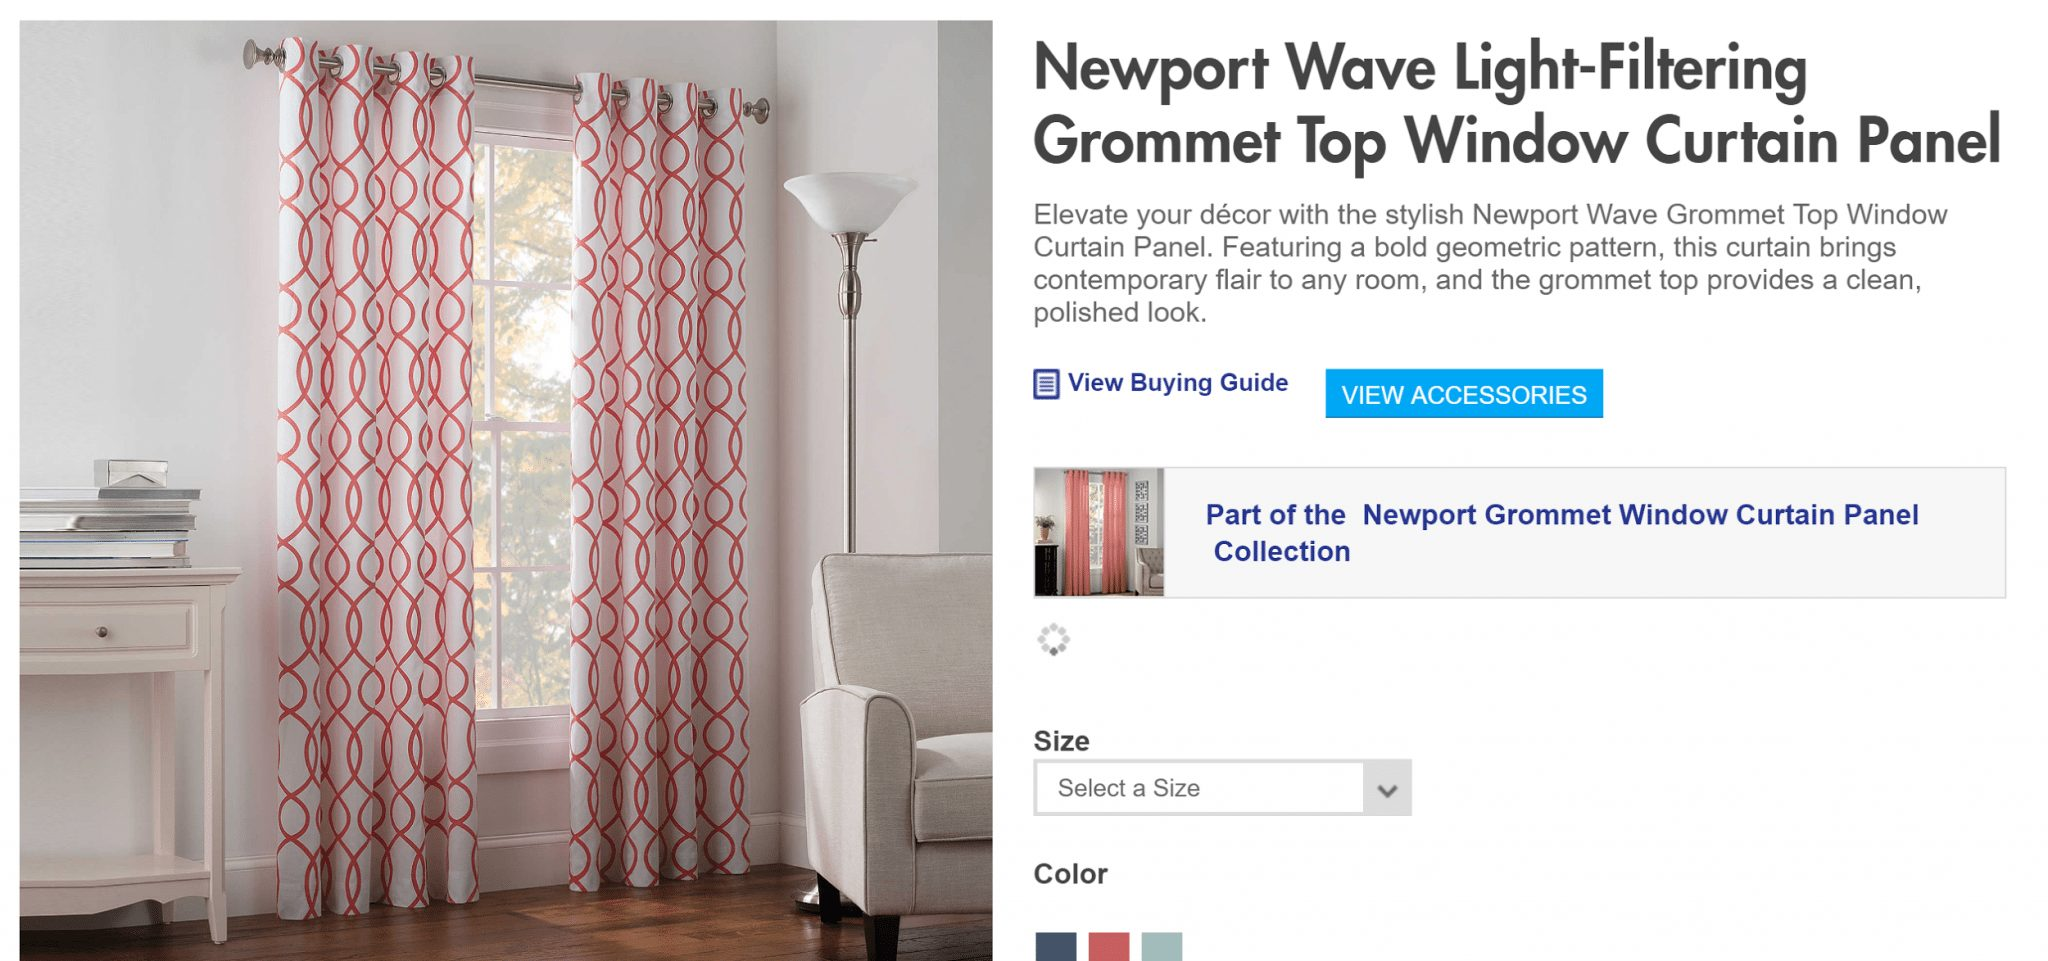 Curtain Review From Bed Bath & Beyond